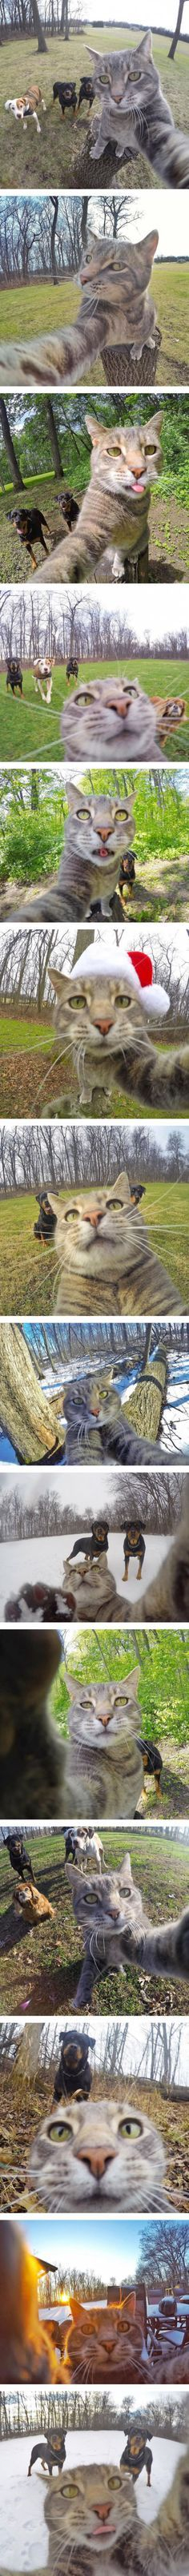 Manny the Cat loves to take selfies to prove his exploits.